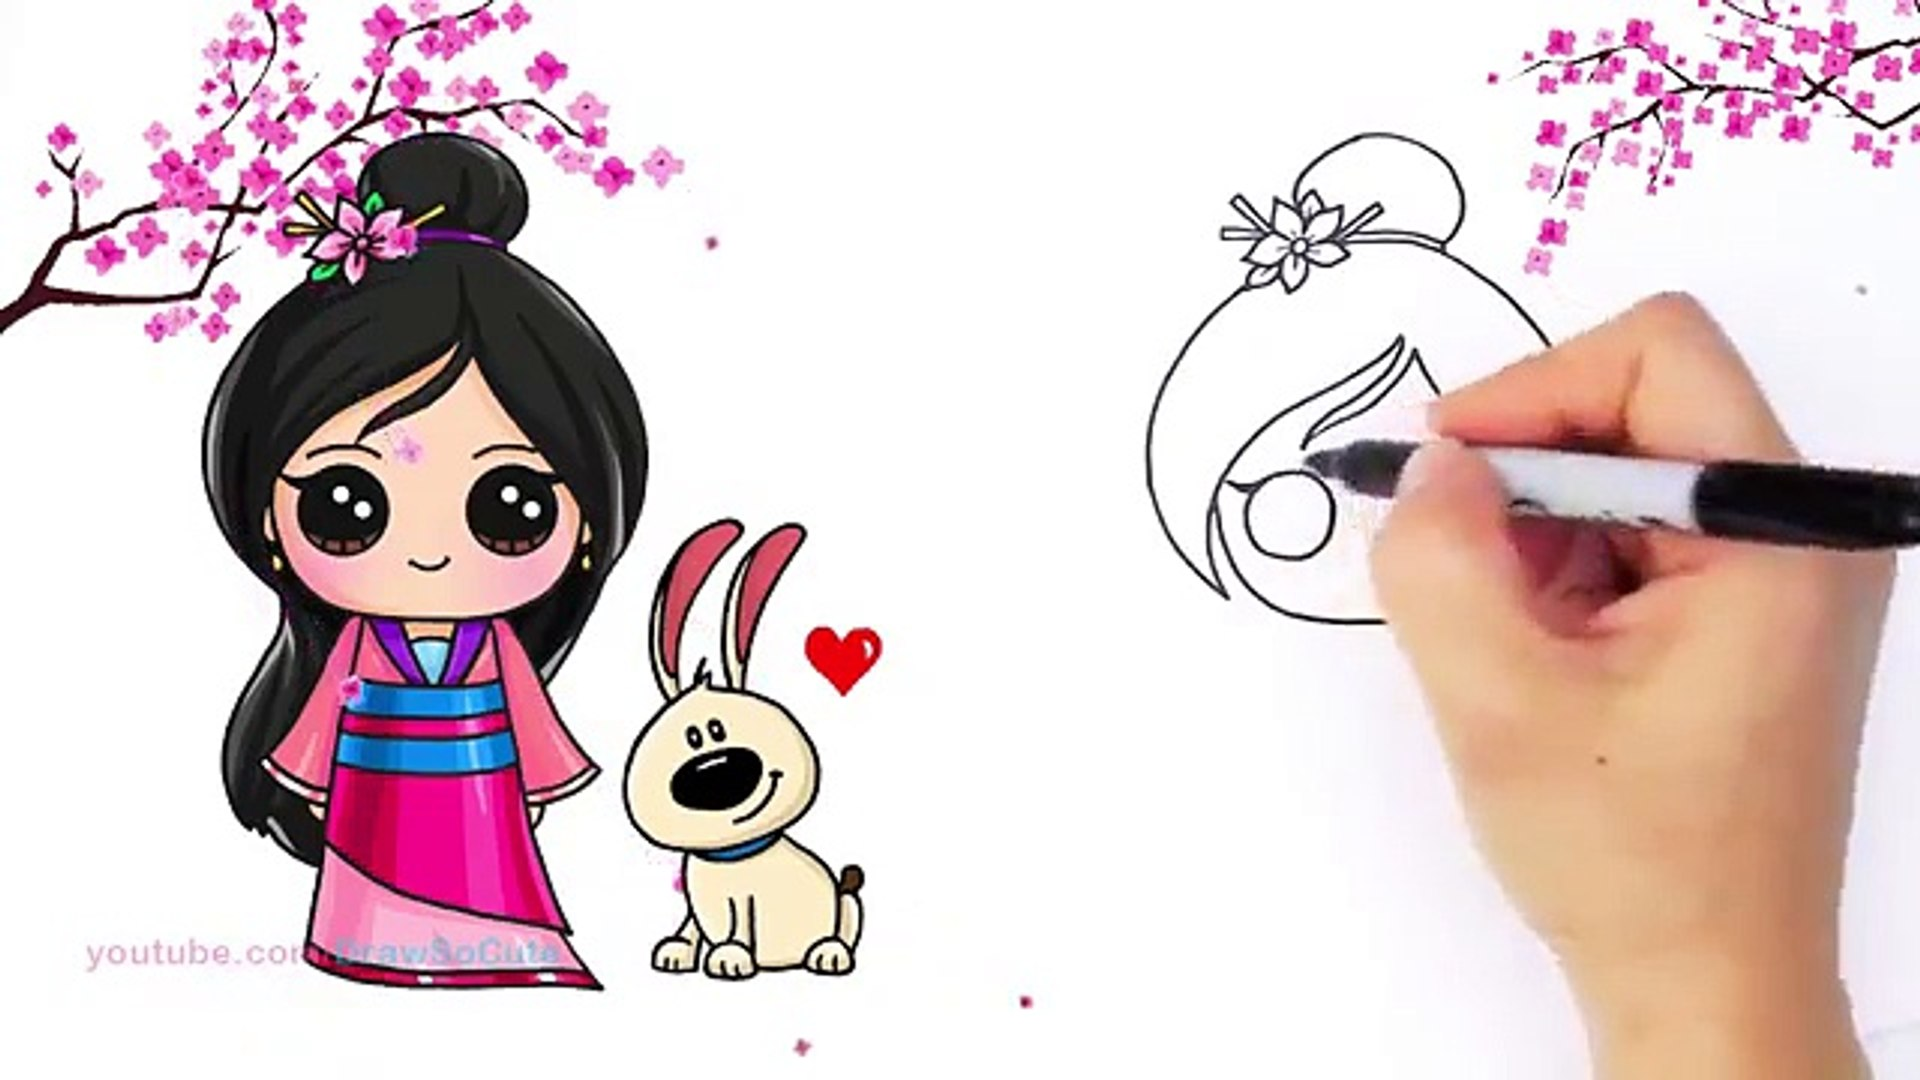 How To Draw Chibi Mulan Step By Step Cute Disney Princess 影片 Dailymotion